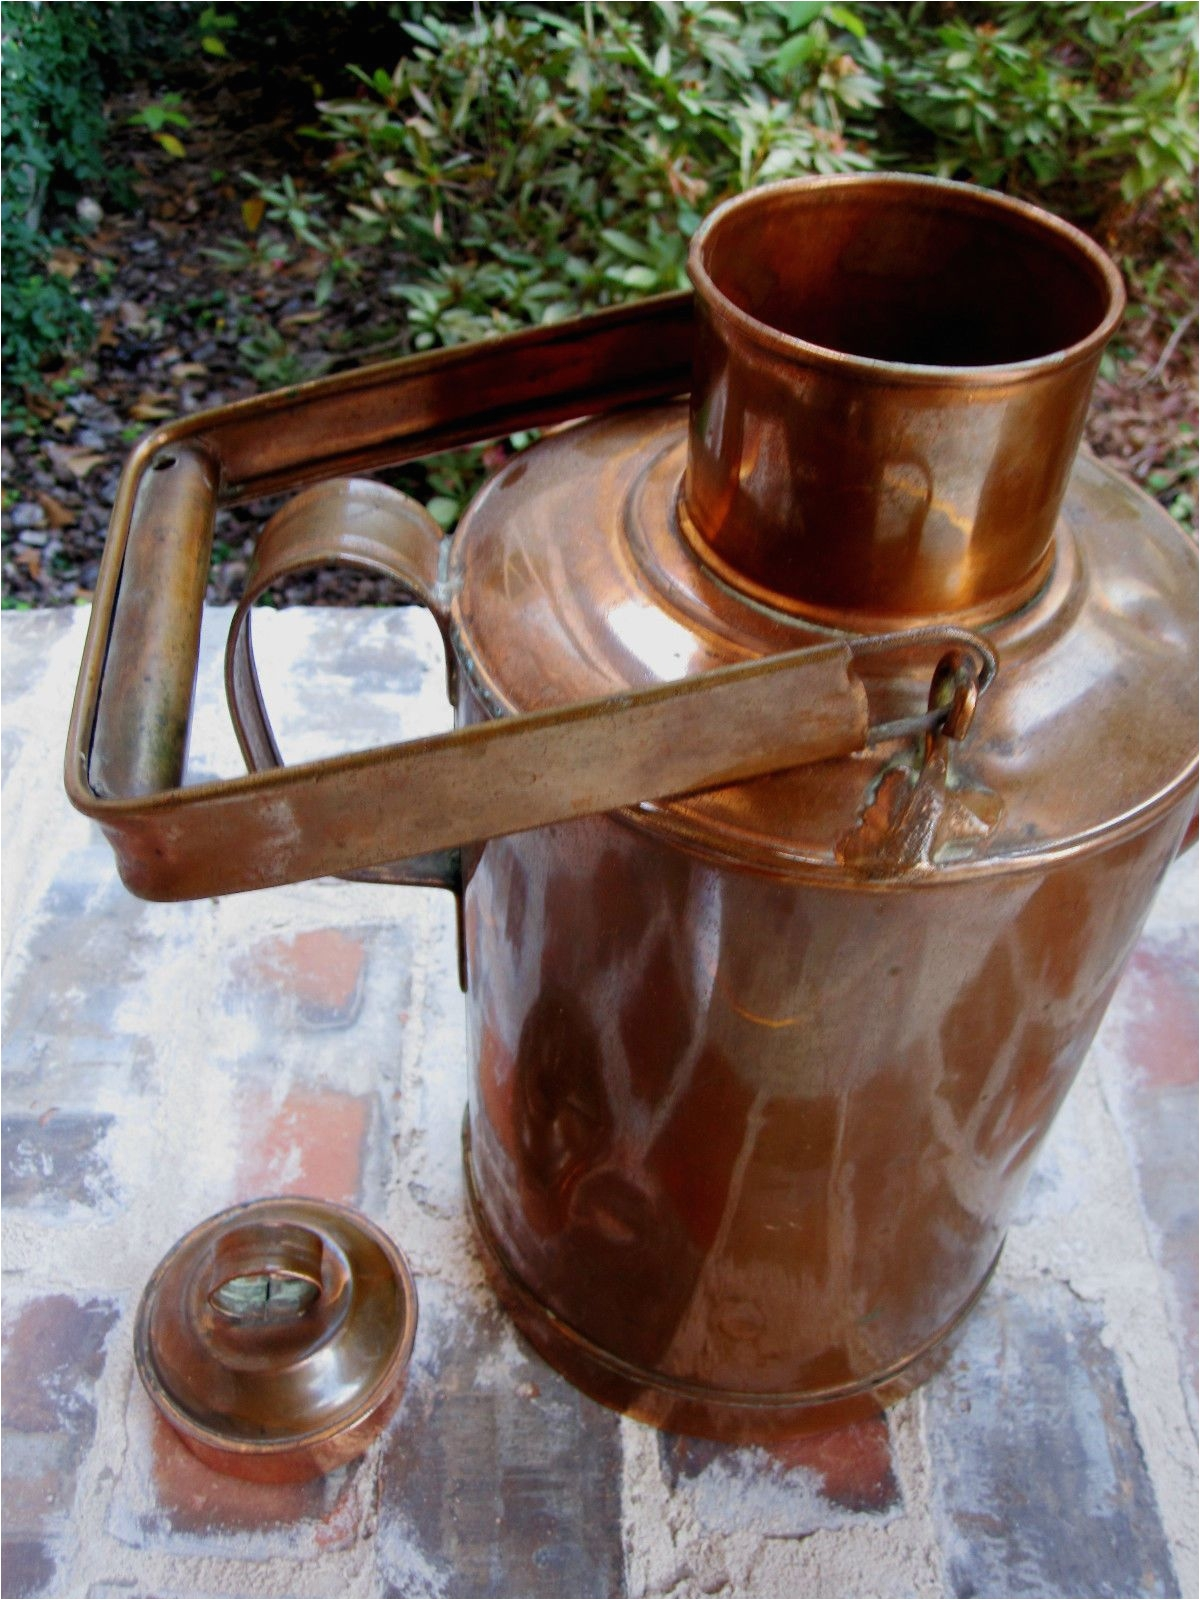 Decorative Copper Pots Antique Unique English Tall Copper Watering Can Jug Kettle Pitcher